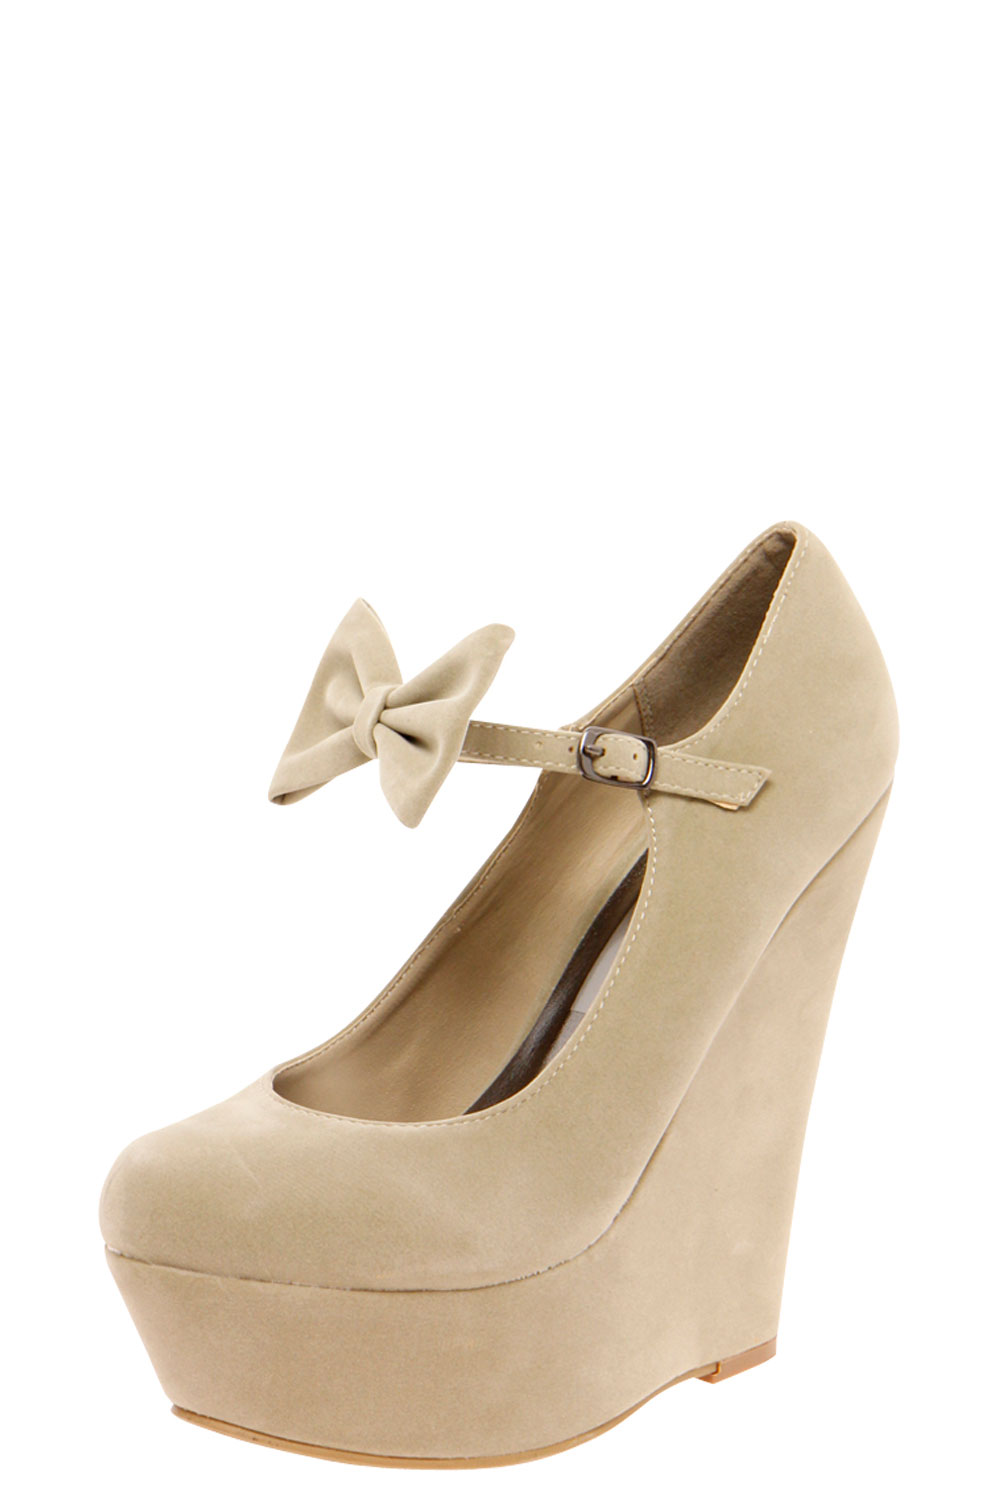 black wedge shoes with bow